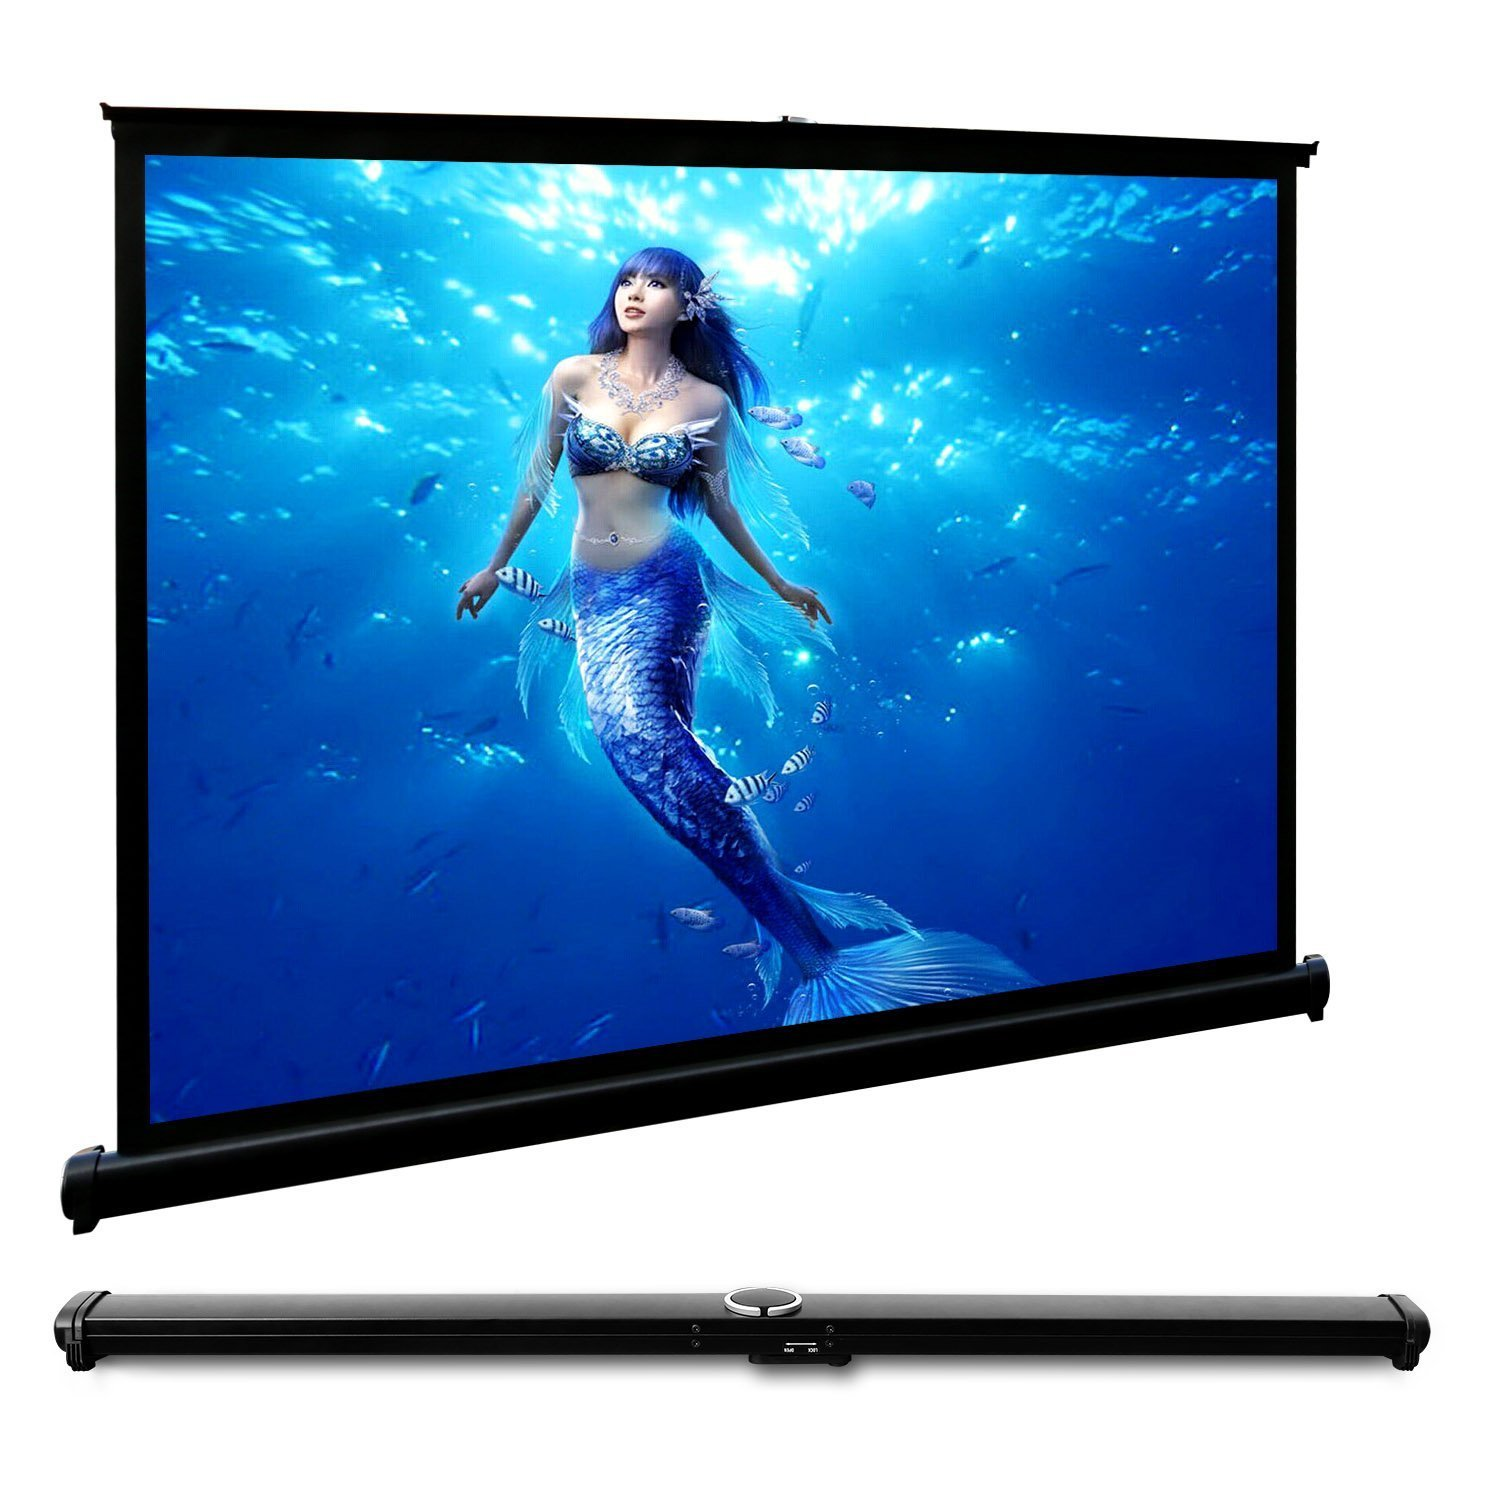 CAIWEI 50-inch Widescreen Projector Screen Portable Outdoor Projection Screen 4:3 Aspect Ratio Easy Installation Manual Desktop Screen Suitable for Home Theater Business Games Party by CAIWEI